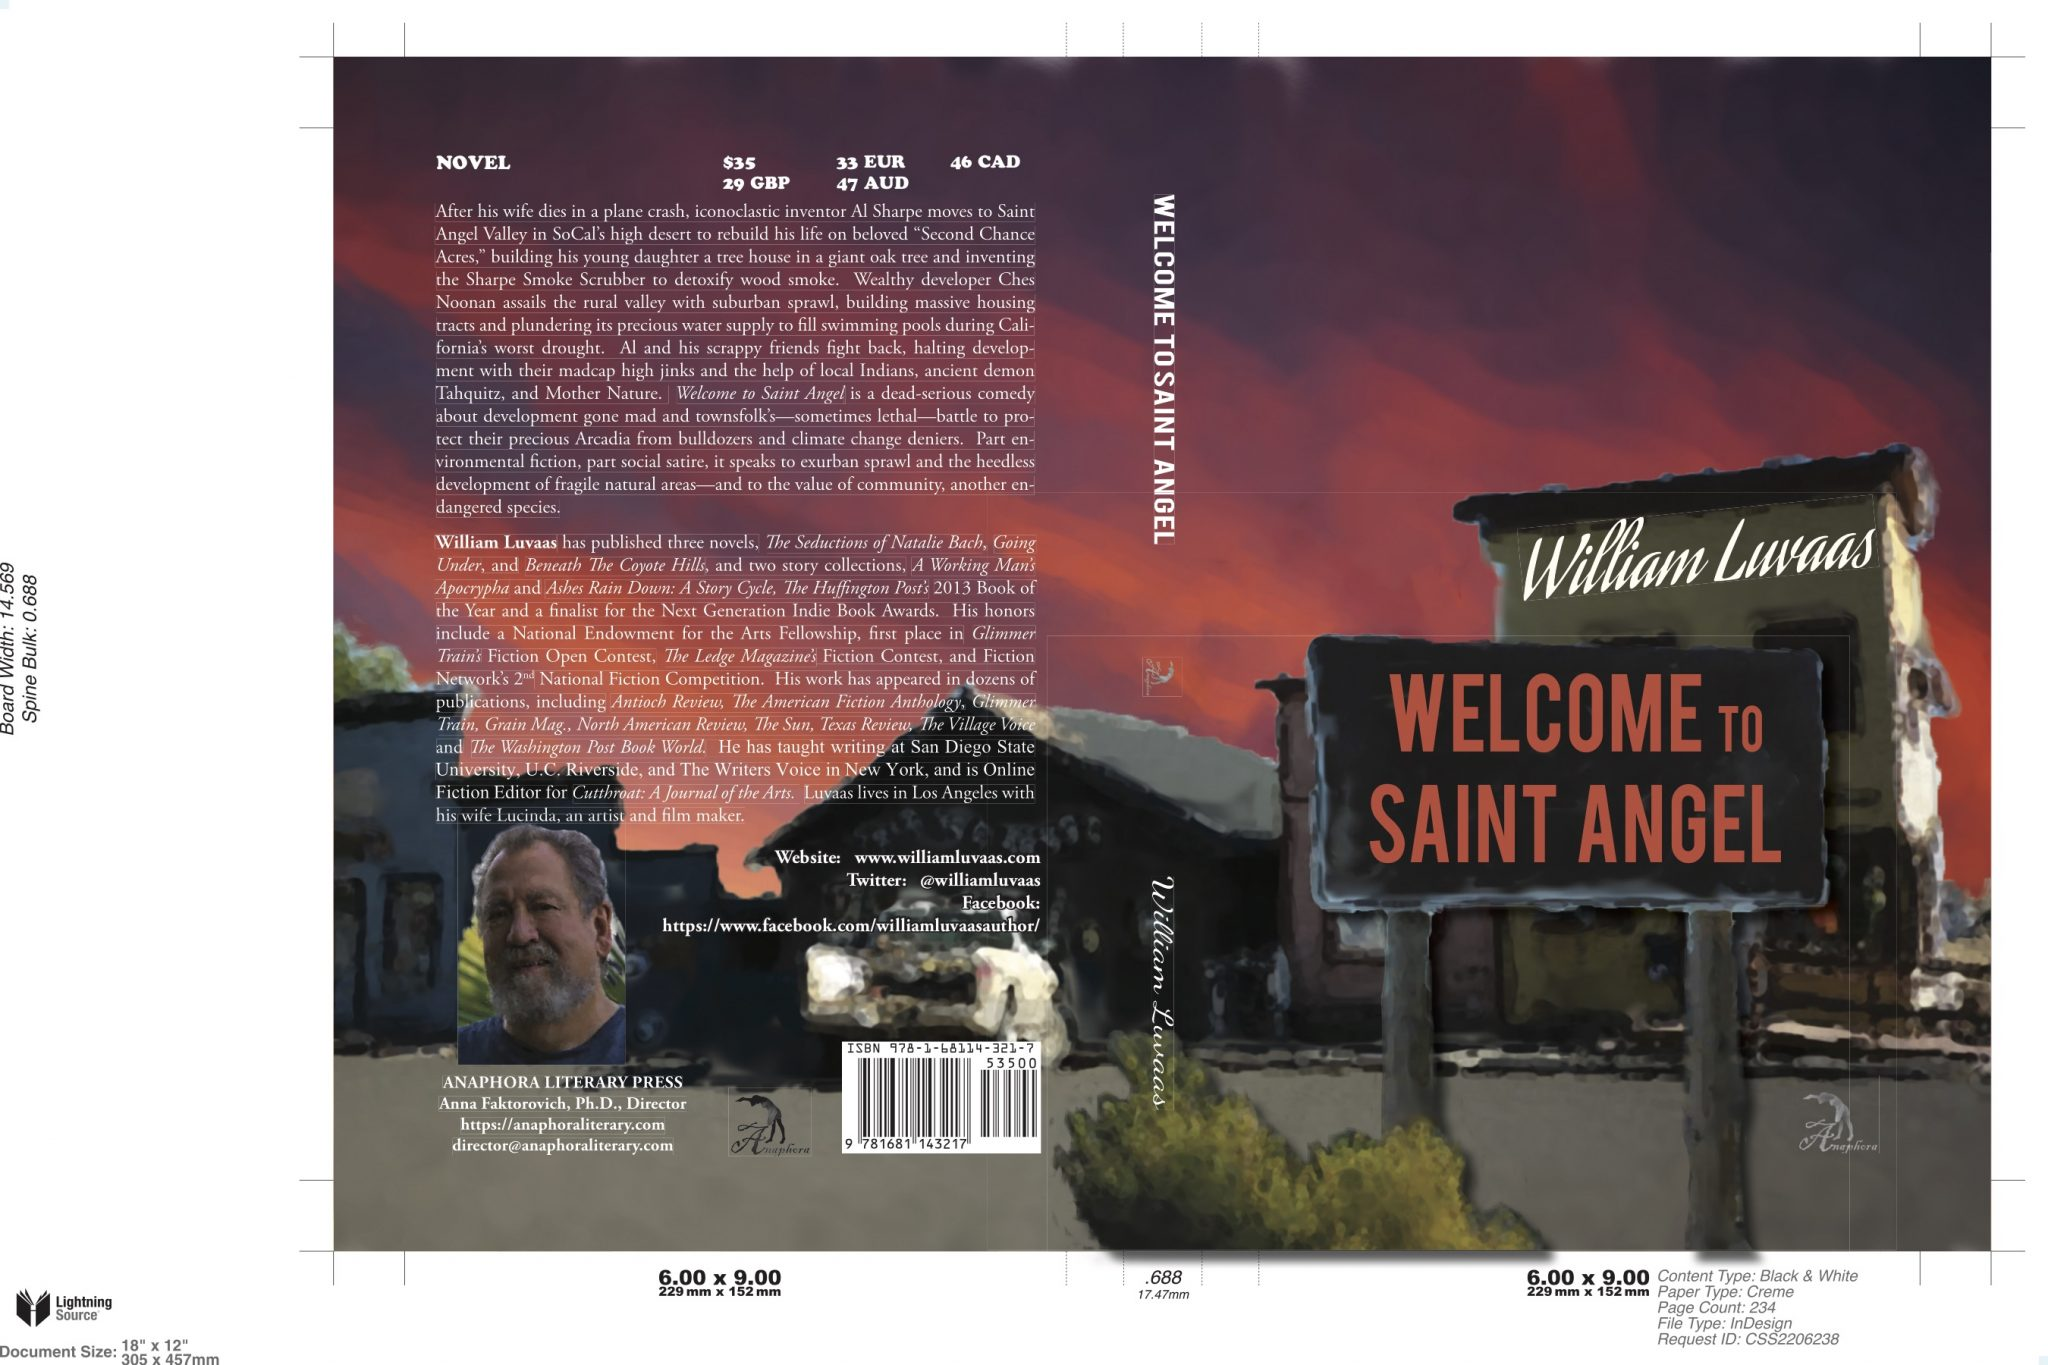 Welcome to Saint Angel by William Luvaas